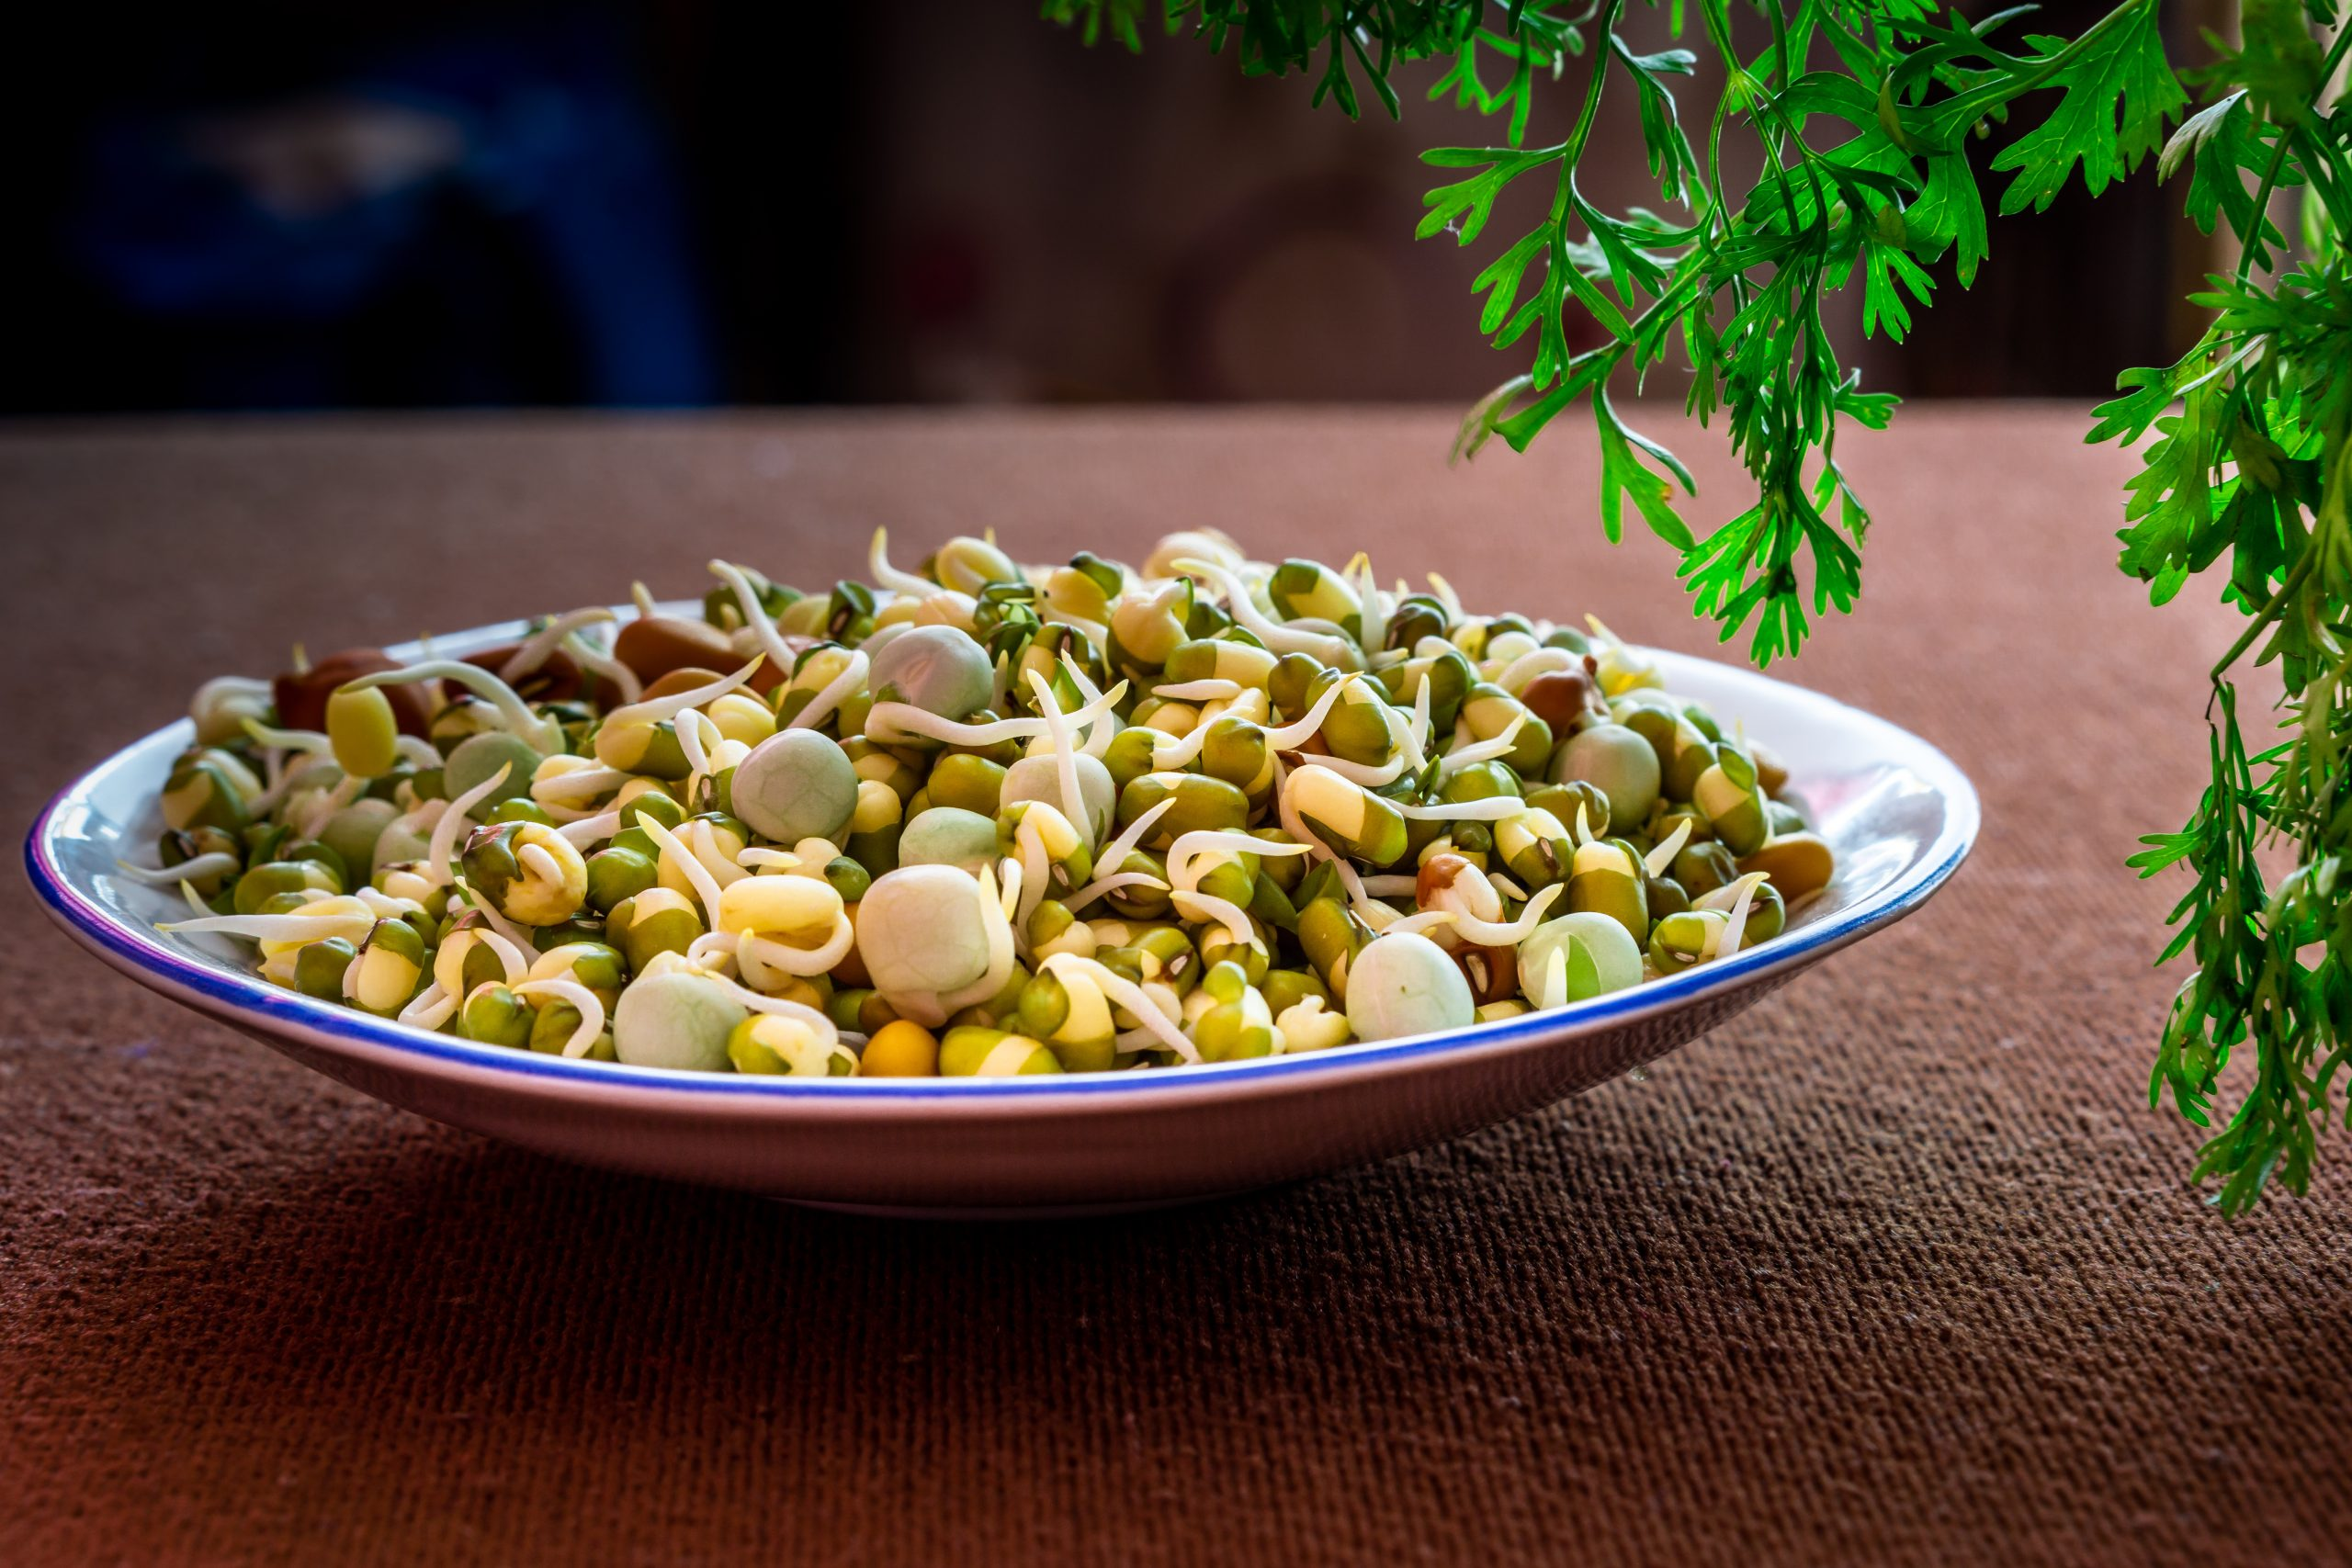 Healthy sprouts on a plate